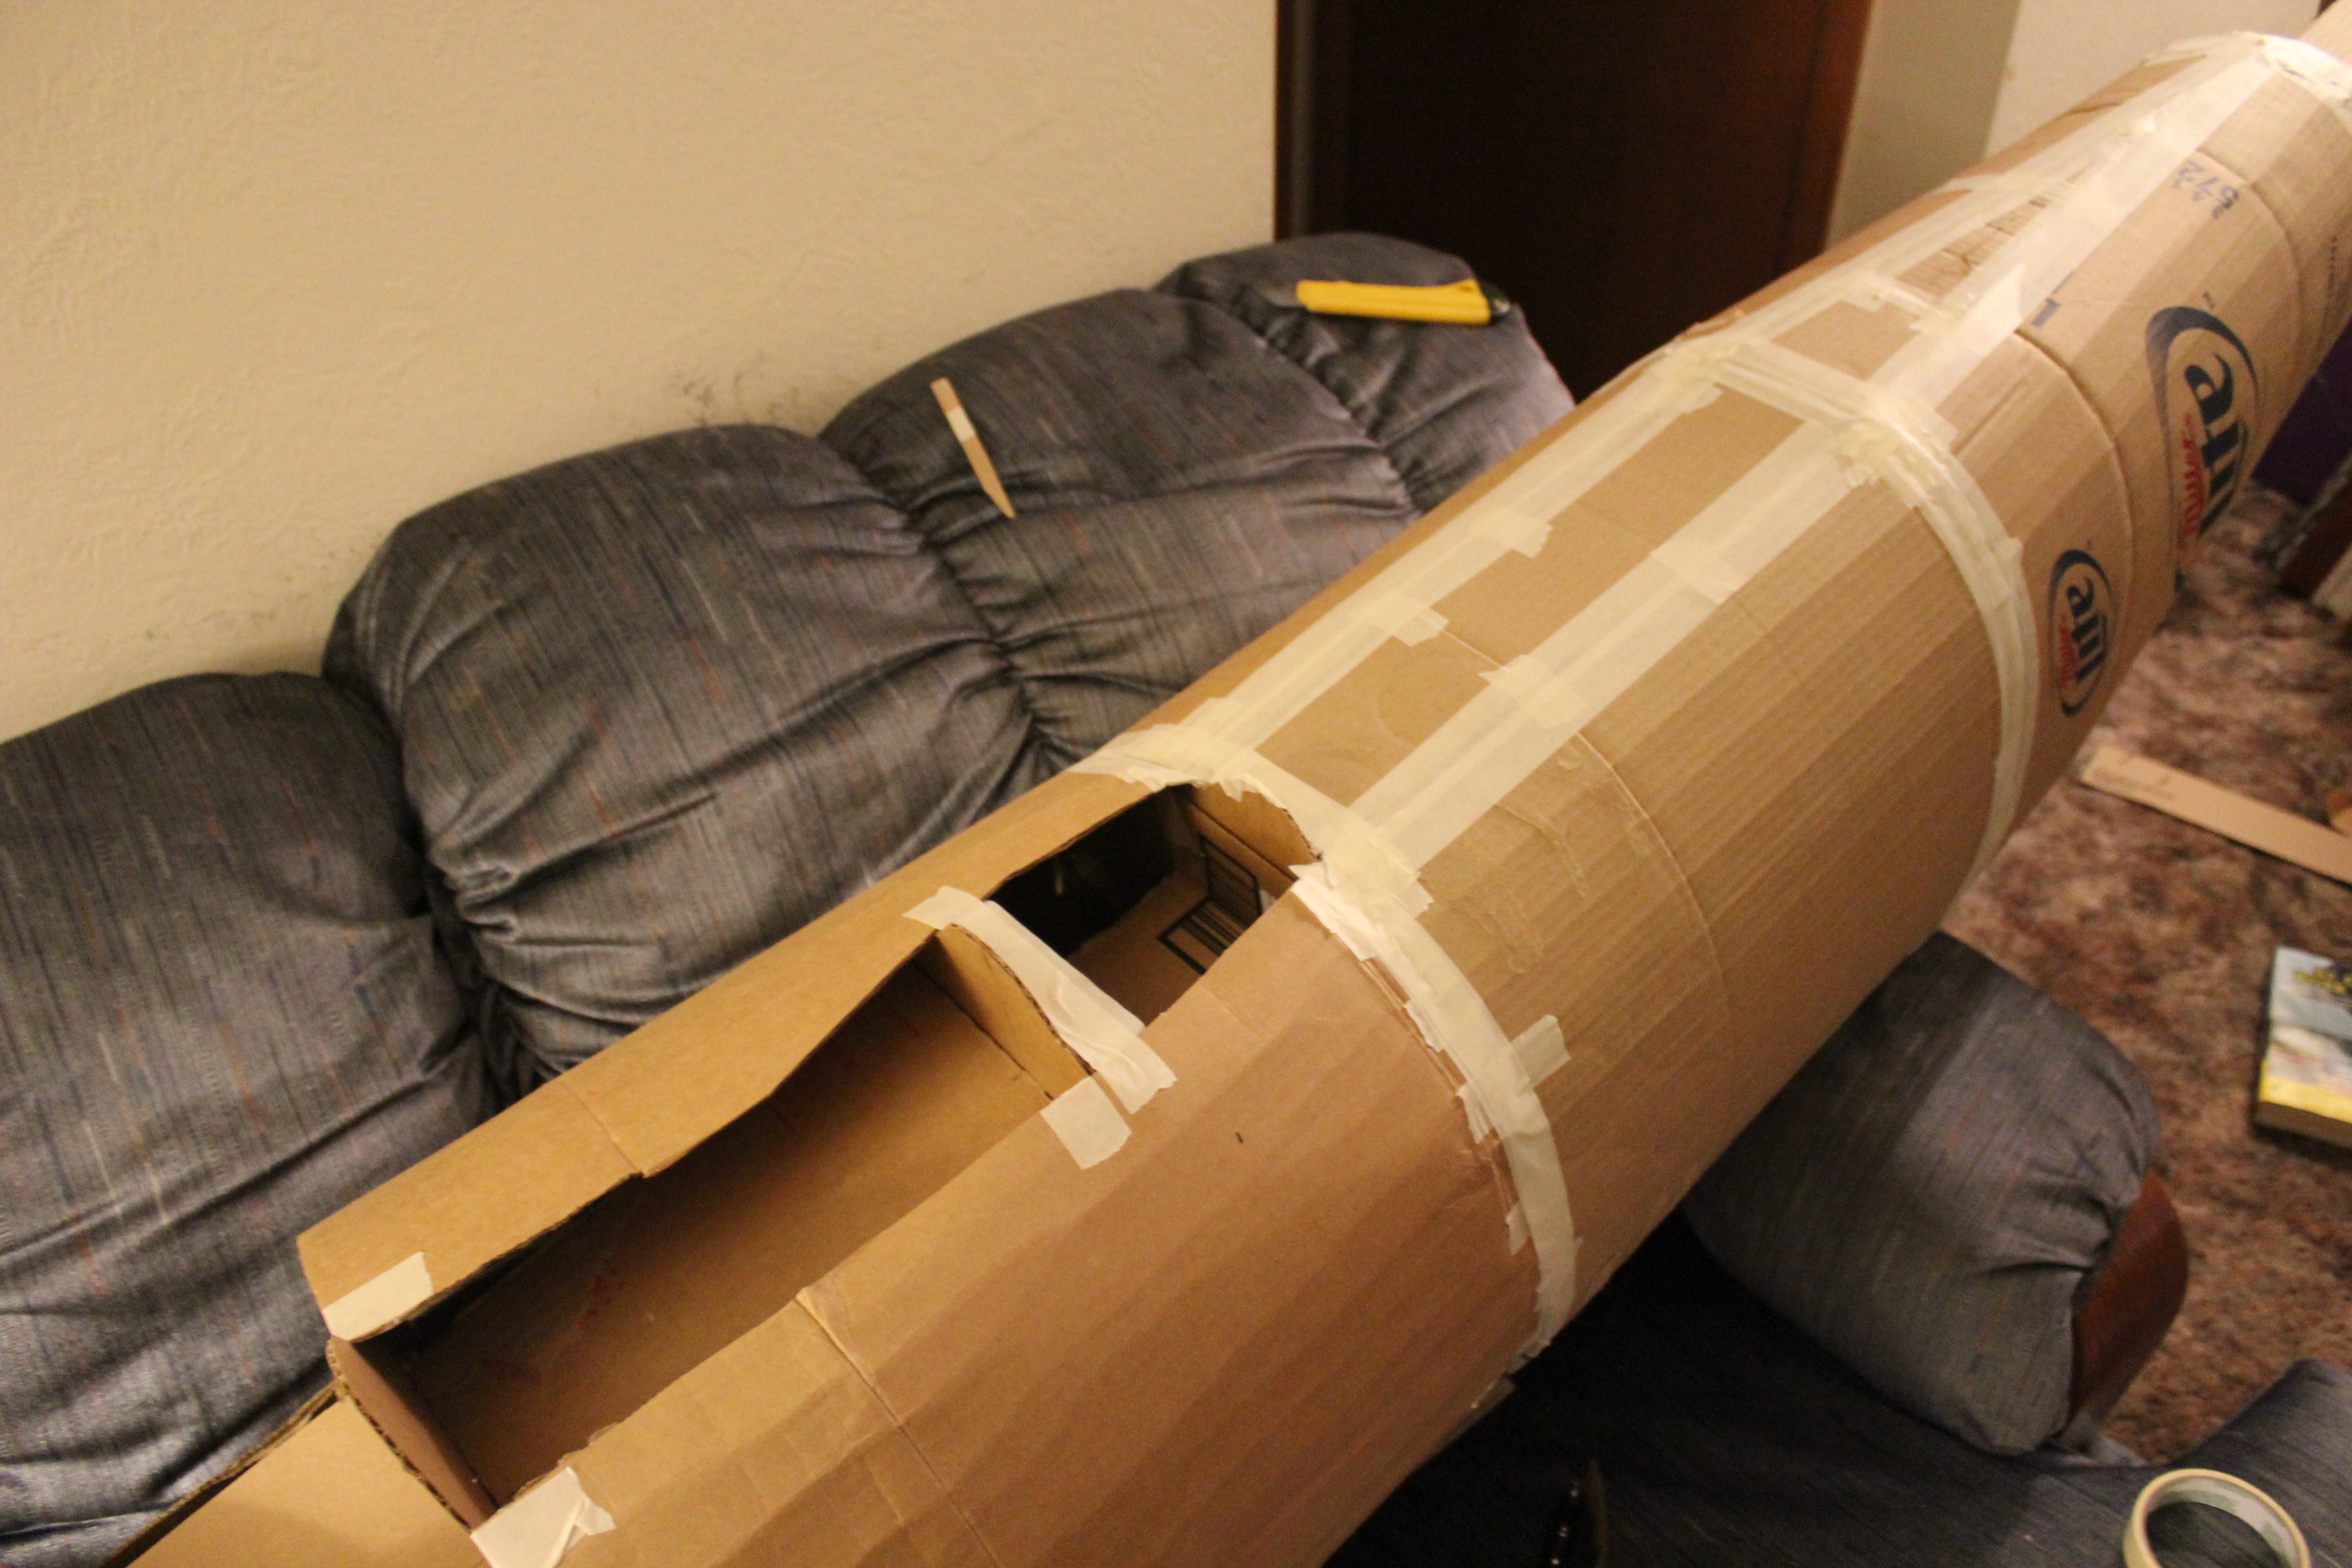 Picture of Covering the Body in Cardboard and Getting a Head